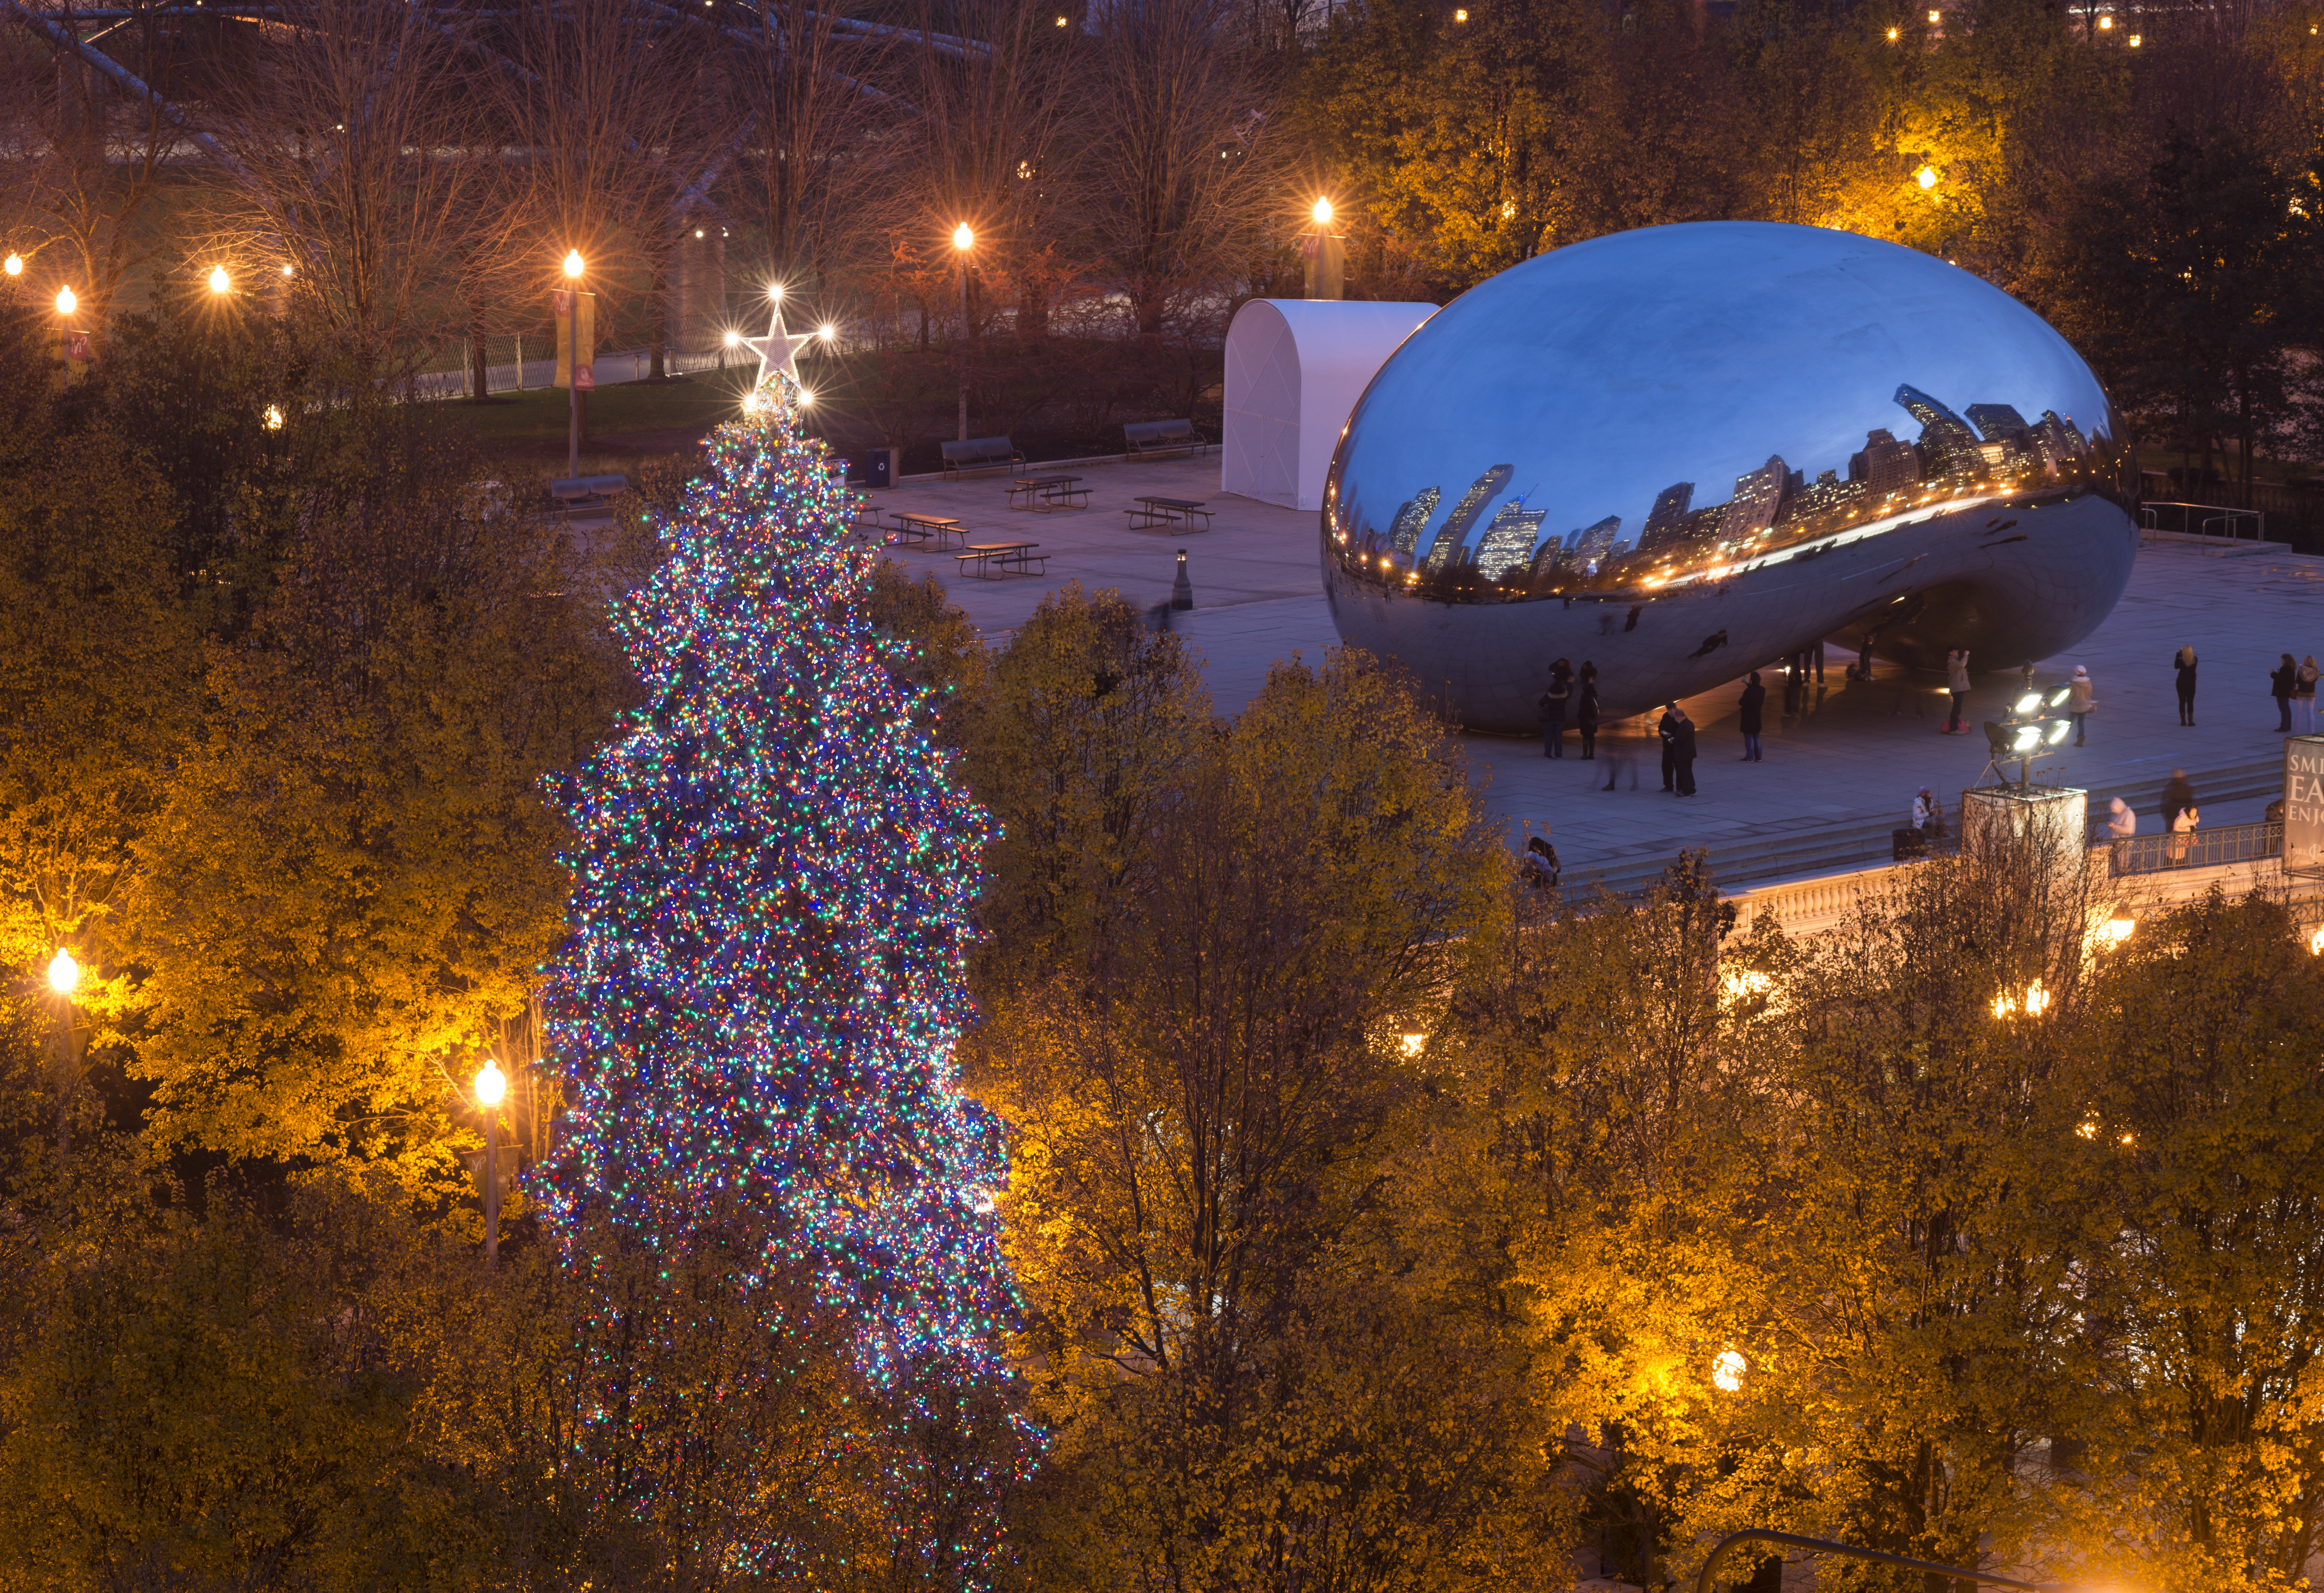 The lighting of Chicago's official Christmas tree will take place Nov. 22 in Millennium Park.